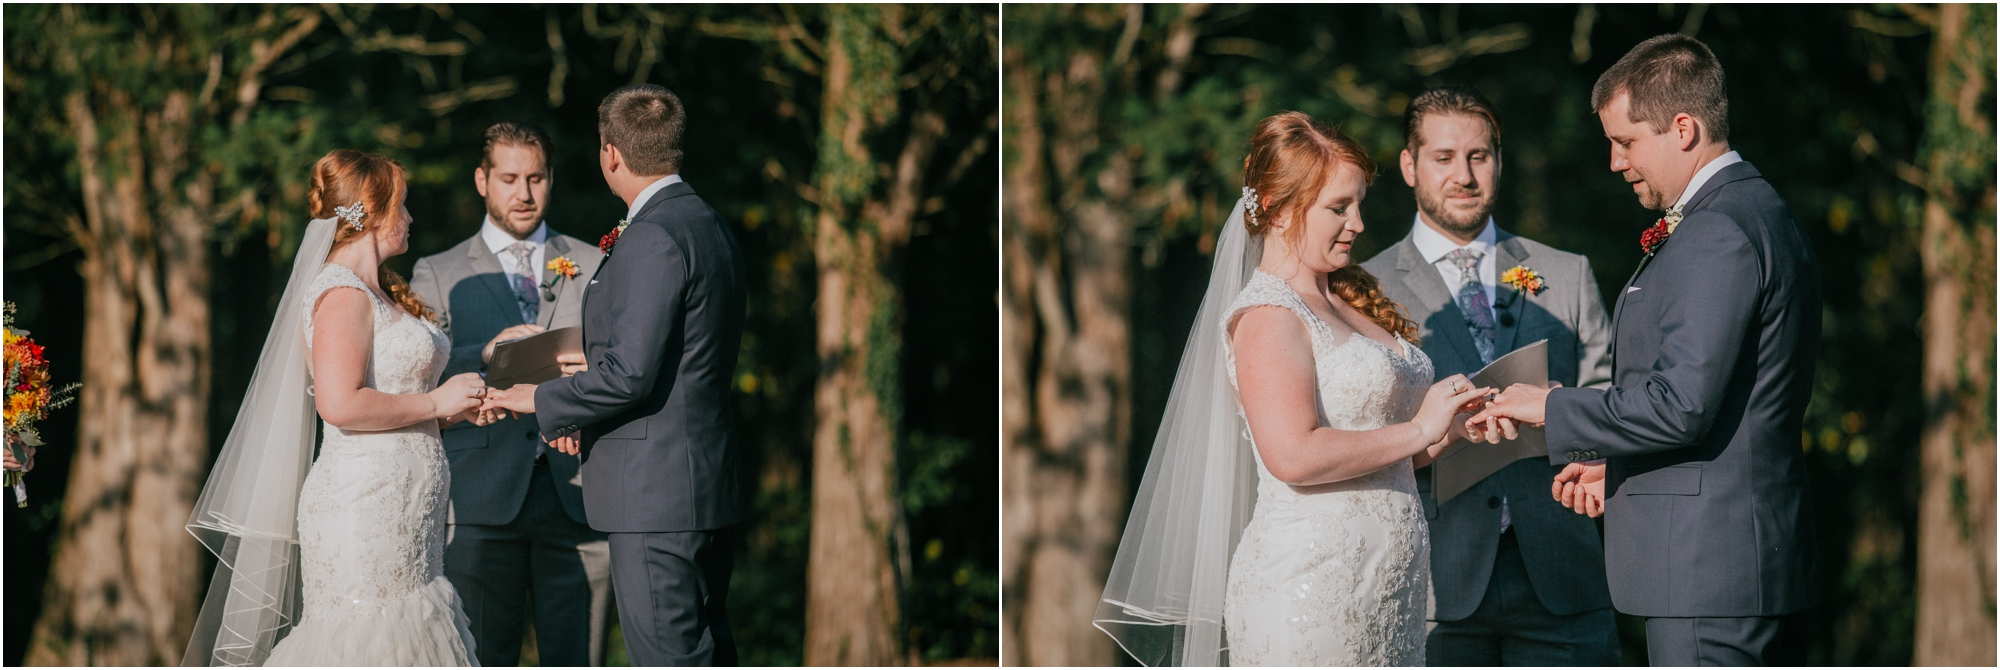 Fall-gem-stone-earthy-succulent-mount-airy-mansion-wedding-tennessee-elopement-photographer_0102.jpg